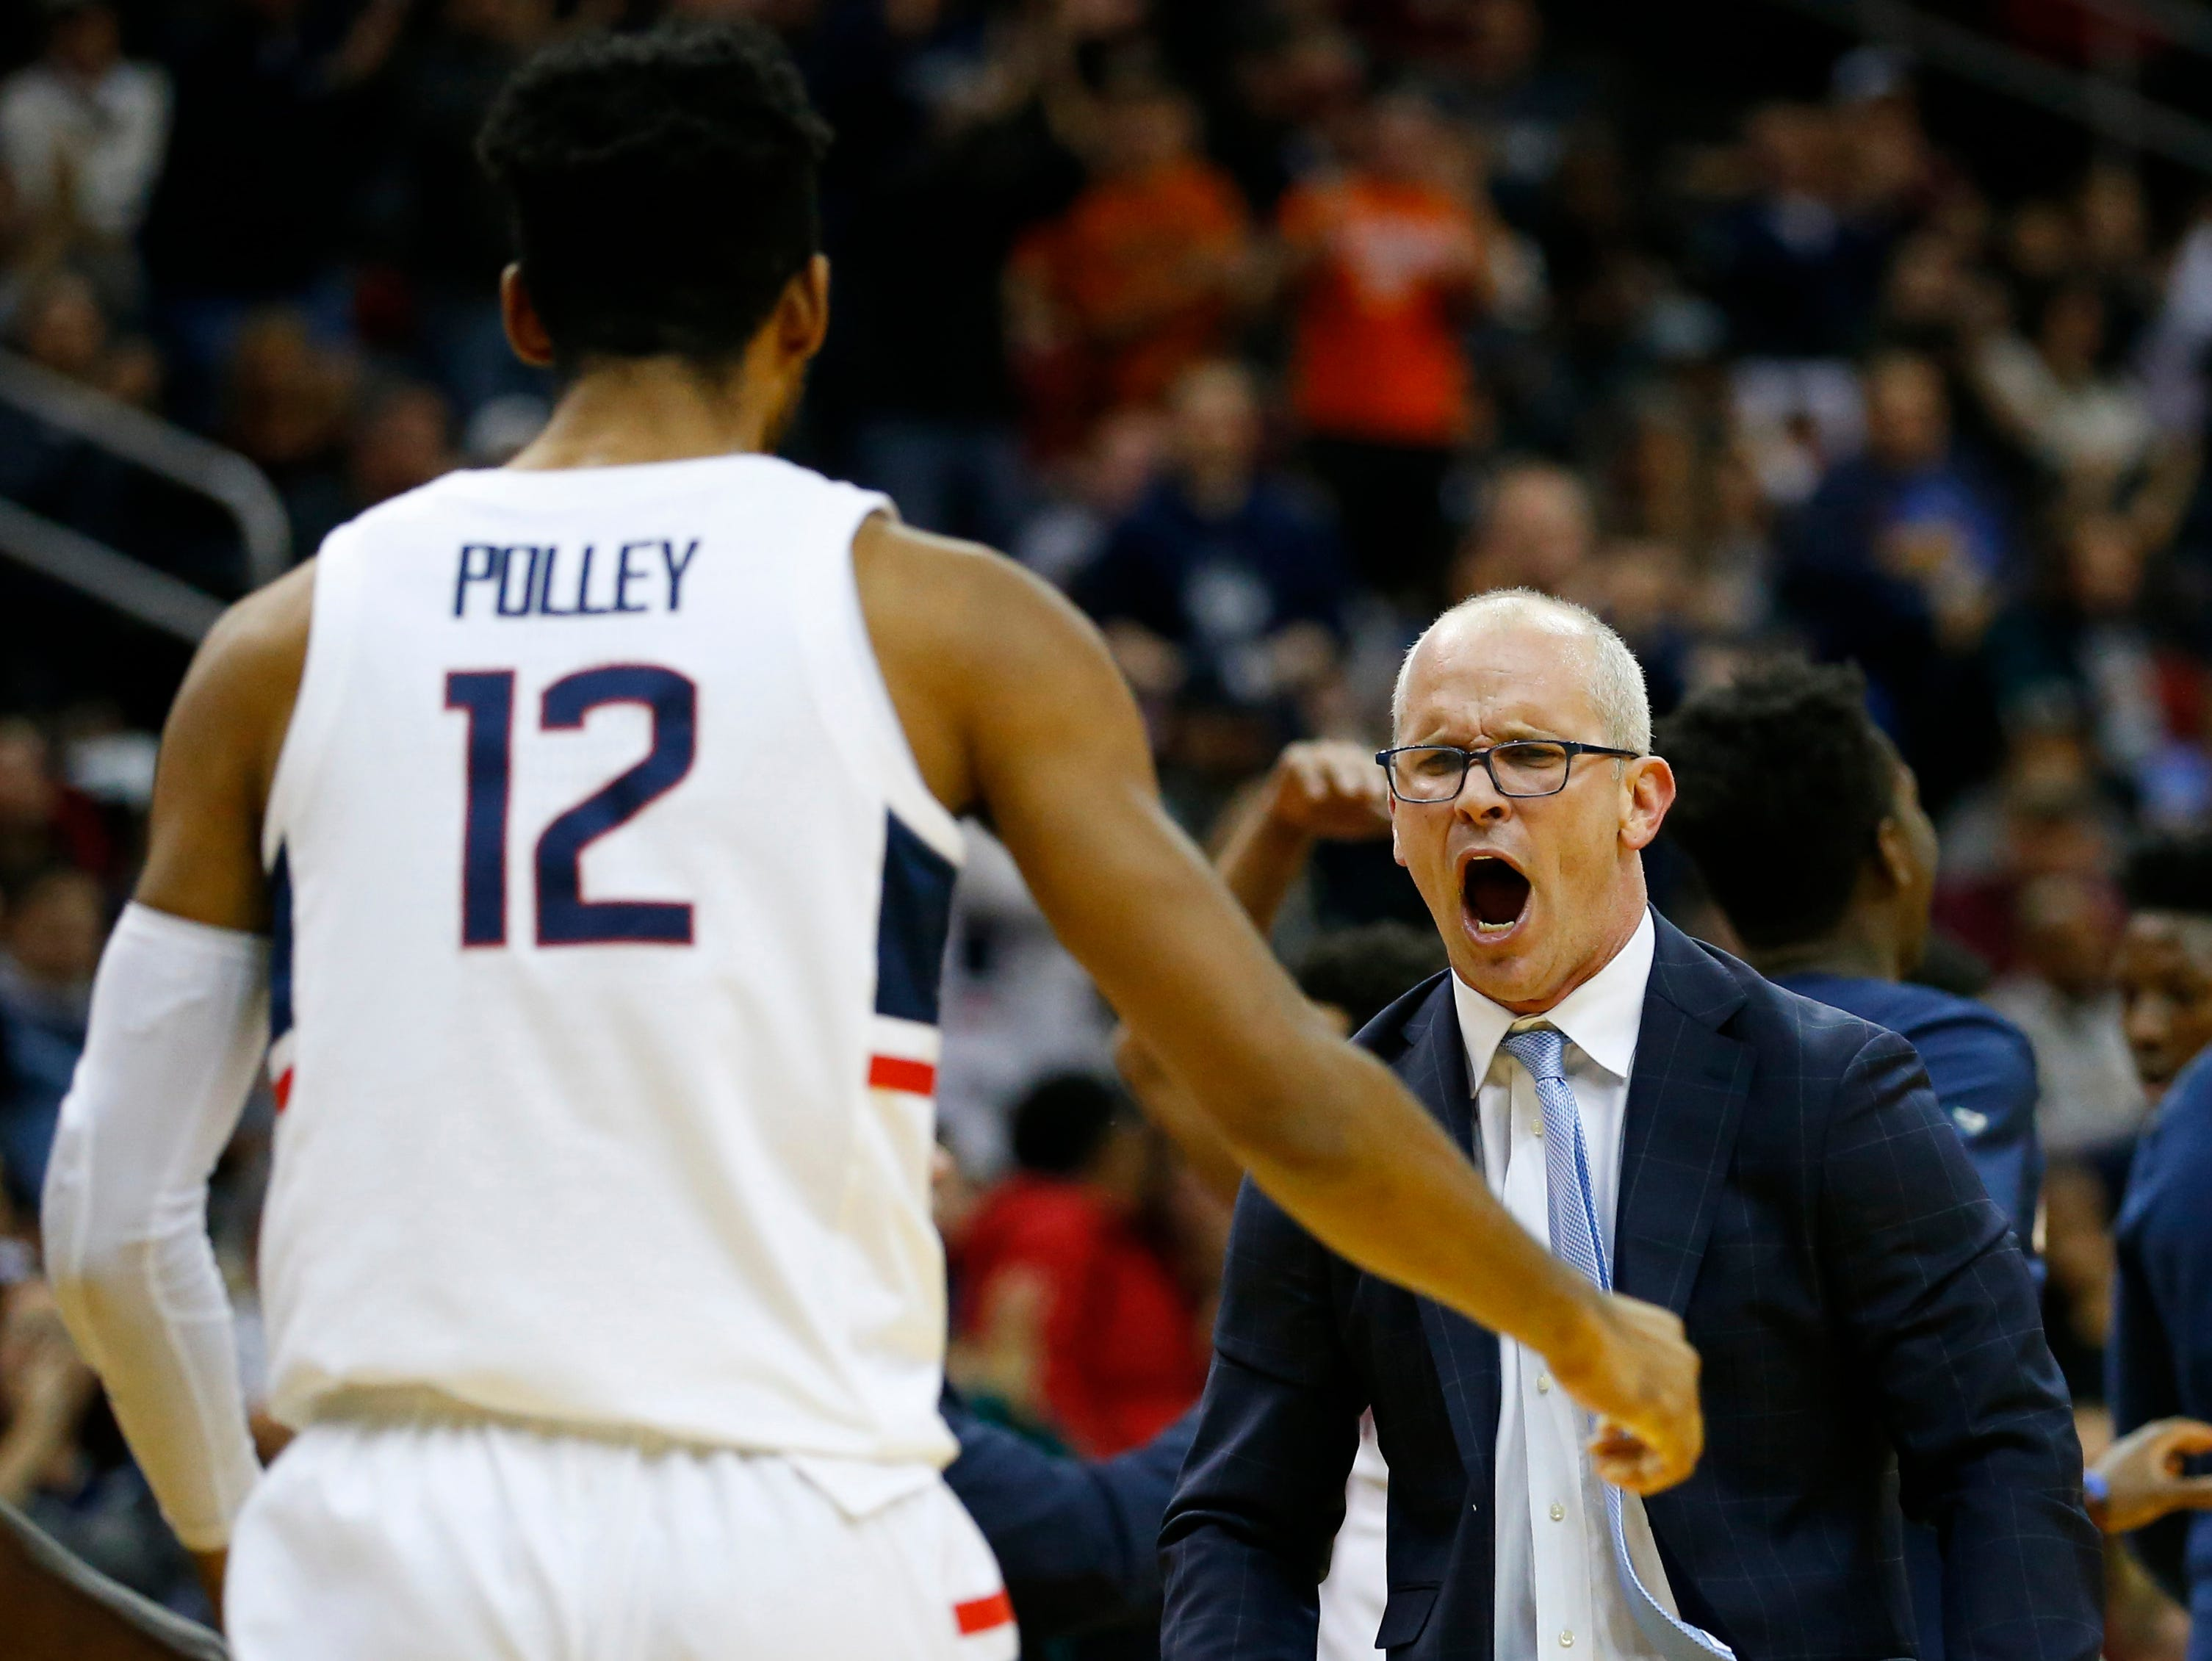 Dec 8, 2018; Newark, NJ, USA; Connecticut Huskies forward Tyler Polley (12) reacts with head coach Dan Hurley after scoring against Florida State Seminoles during the first half at Prudential Center. Mandatory Credit: Noah K. Murray-USA TODAY Sports